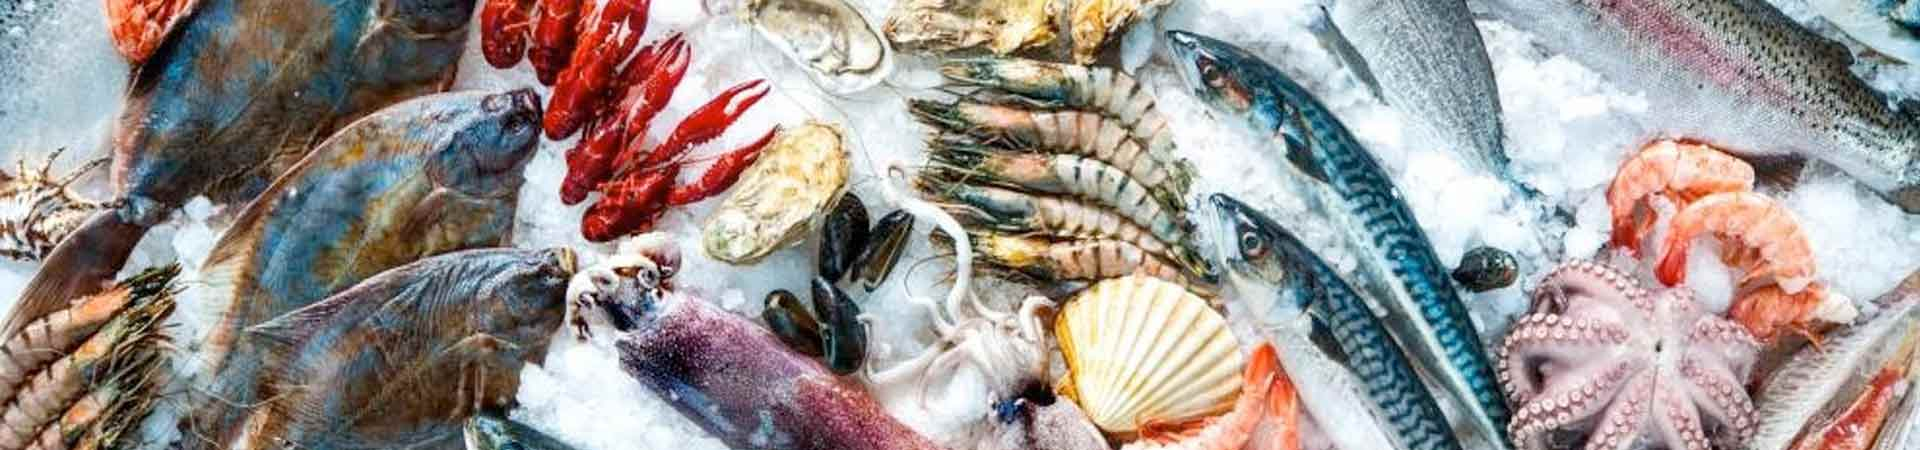 A selection of fresh seafood including fish, crustaceans and molluscs on a sales counter